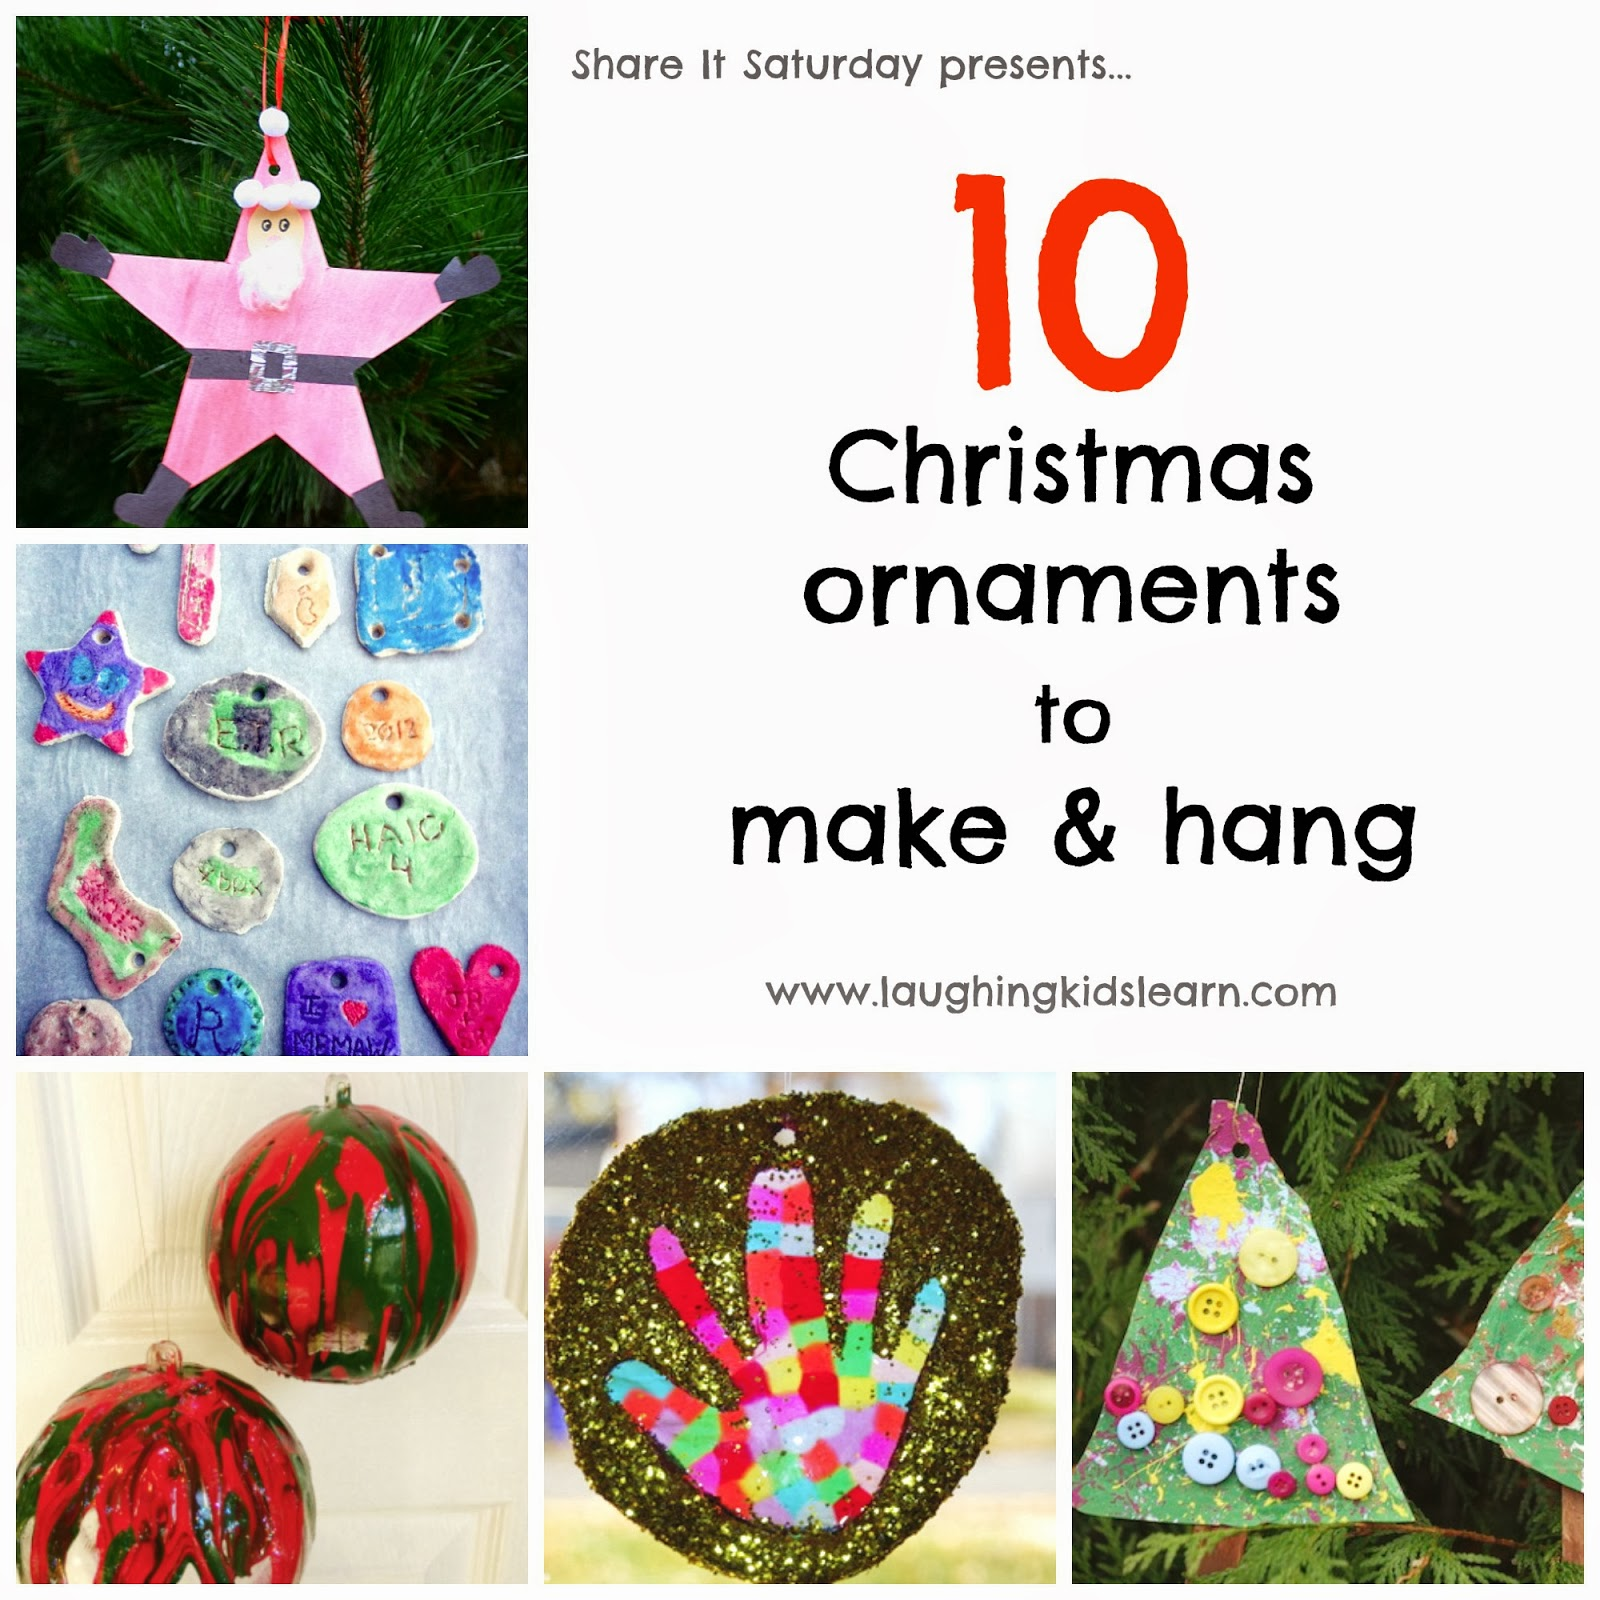 10 Christmas Ornaments to make & hang - Laughing Kids Learn